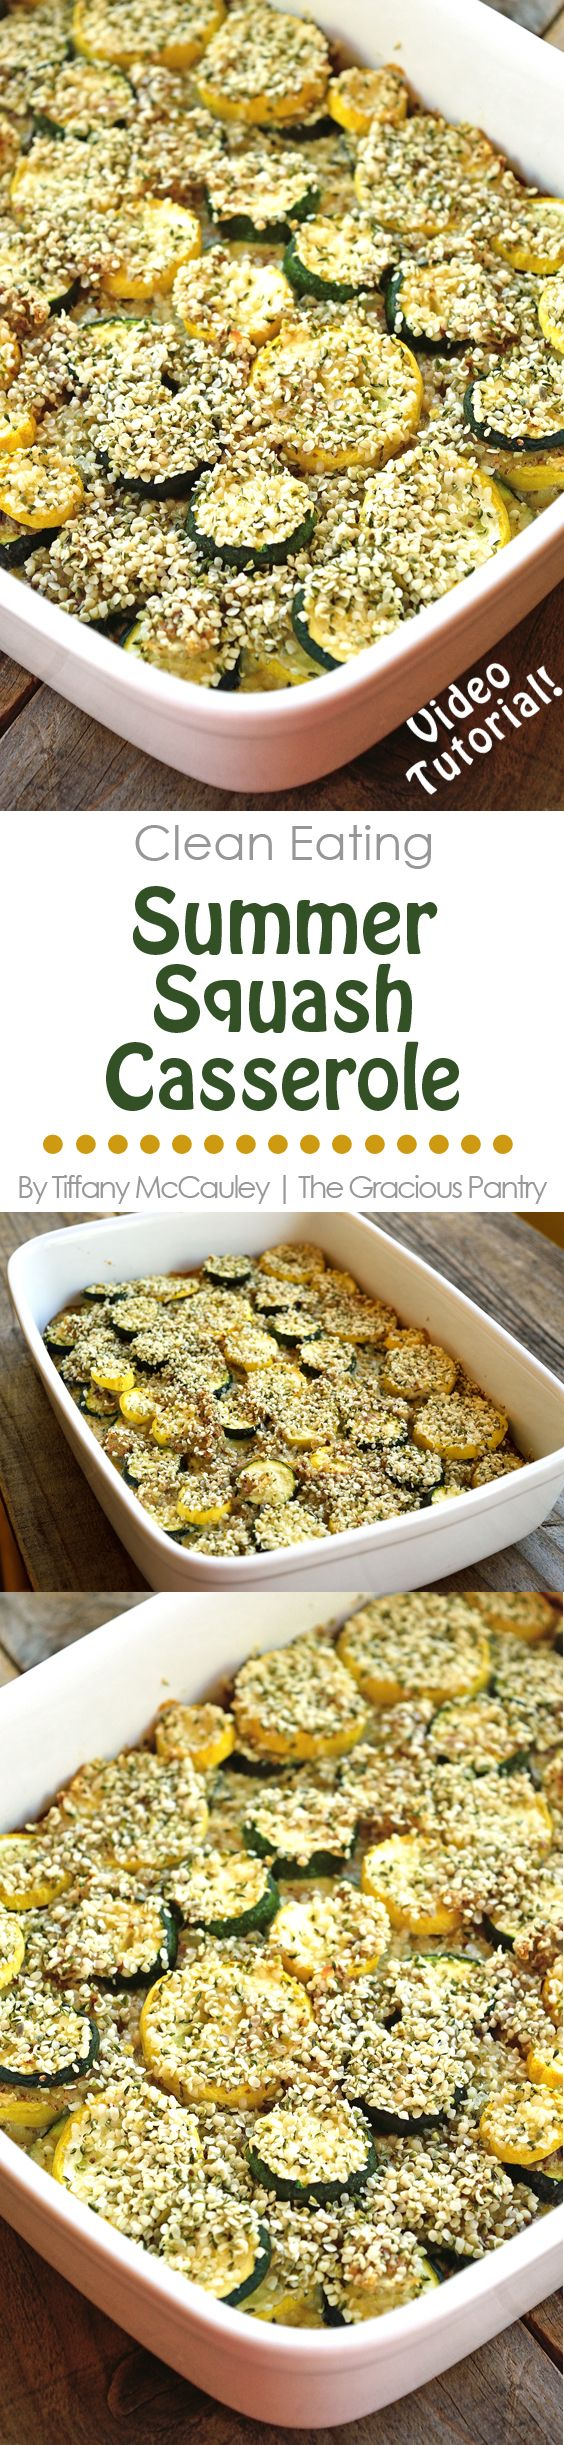 80 best clean eating vegetable recipes images on pinterest clean this dairy free clean eating summer squash casserole is sure to please its allergy forumfinder Gallery